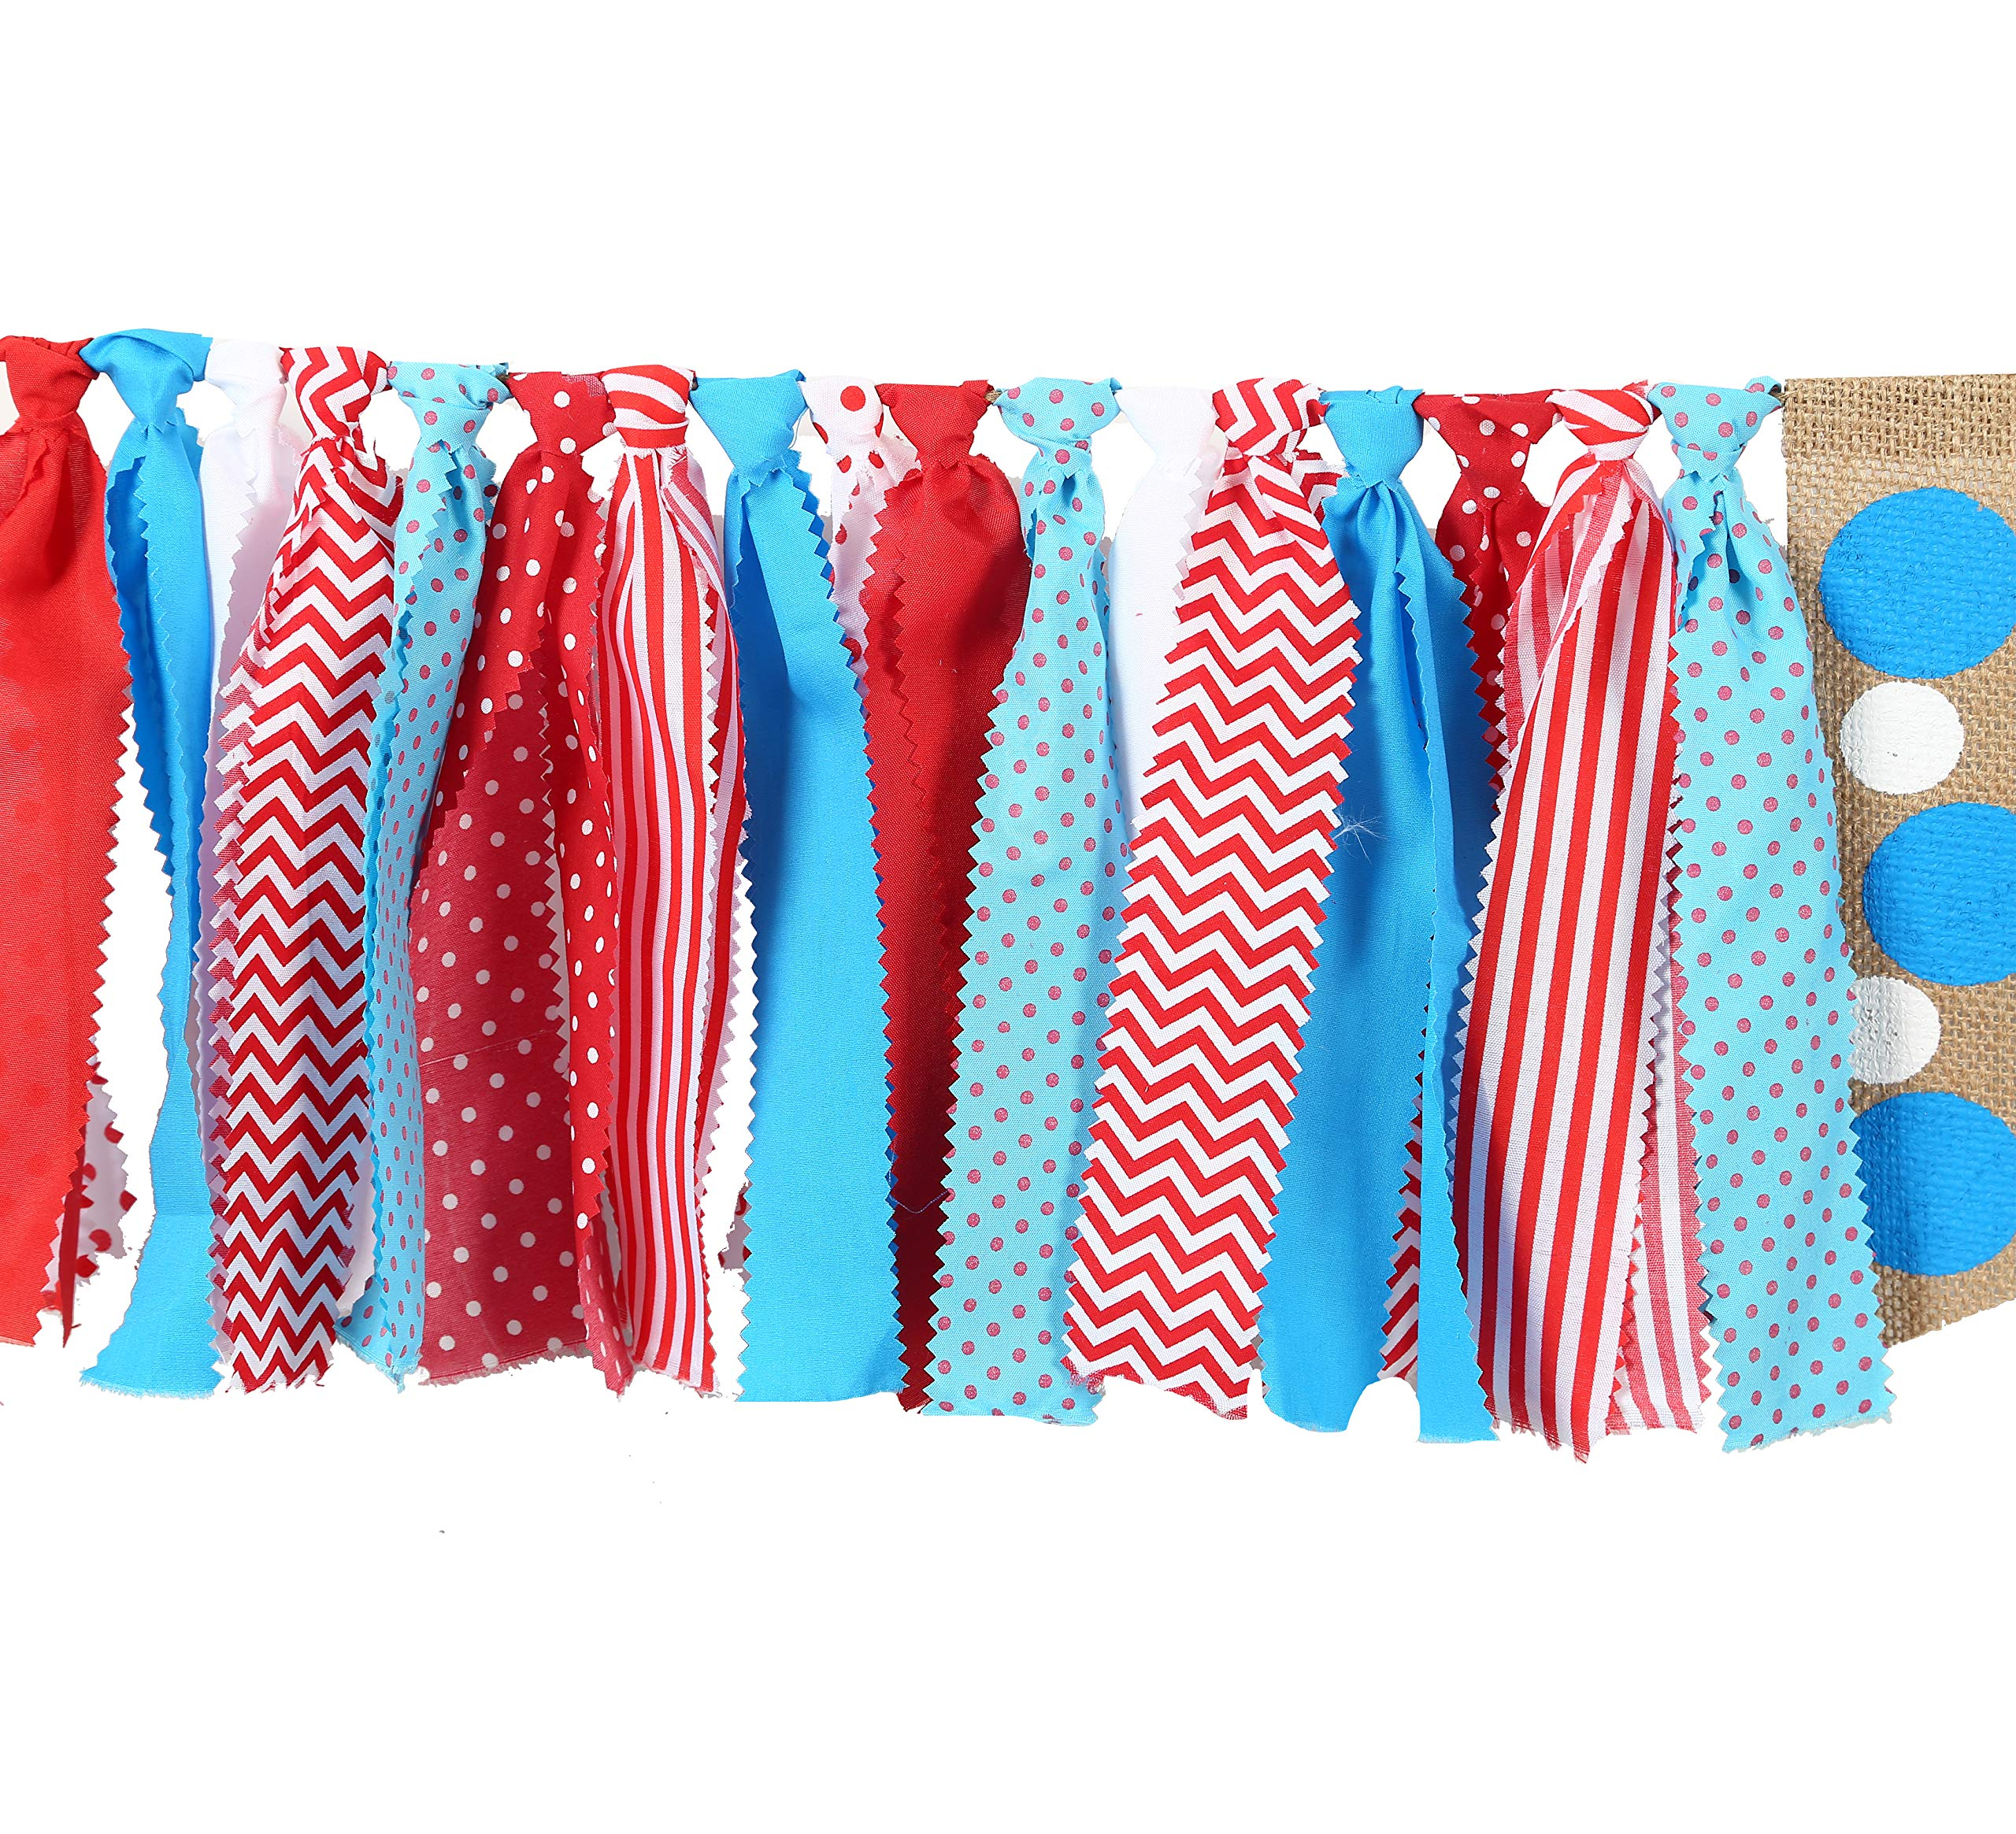 WAOUH 1star Birthday for Dr Seuss Decorations - Dr Seuss Party Supplies for Highchair Banner-Photo Prop for Dr Seuss Wall Decor,Birthday Souvenir and Gifts for Kids (1st Birthday Banner) by WAOUH (Image #4)